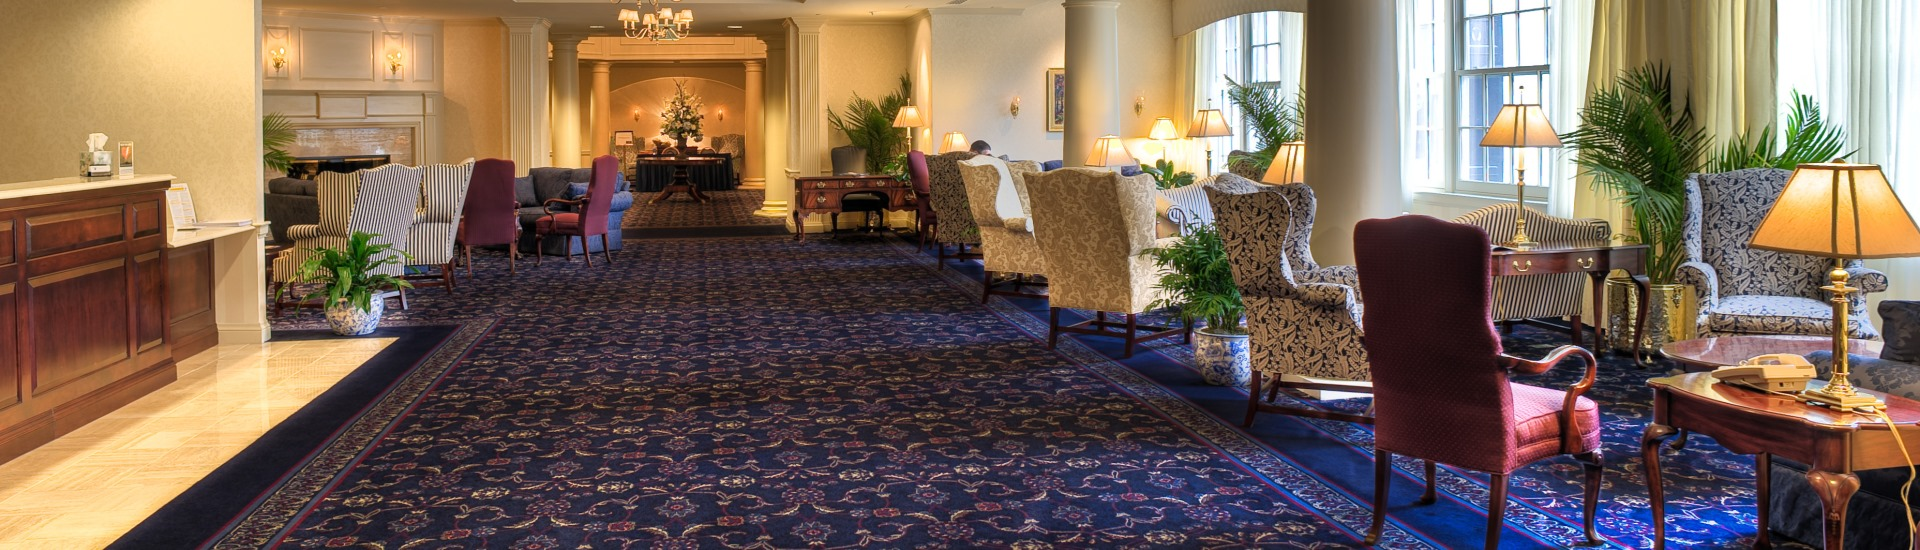 Nittany Lion Inn Dining Room Awesome May 2018 Commencement  The Nittany Lion Inn  The Official Site . Design Inspiration